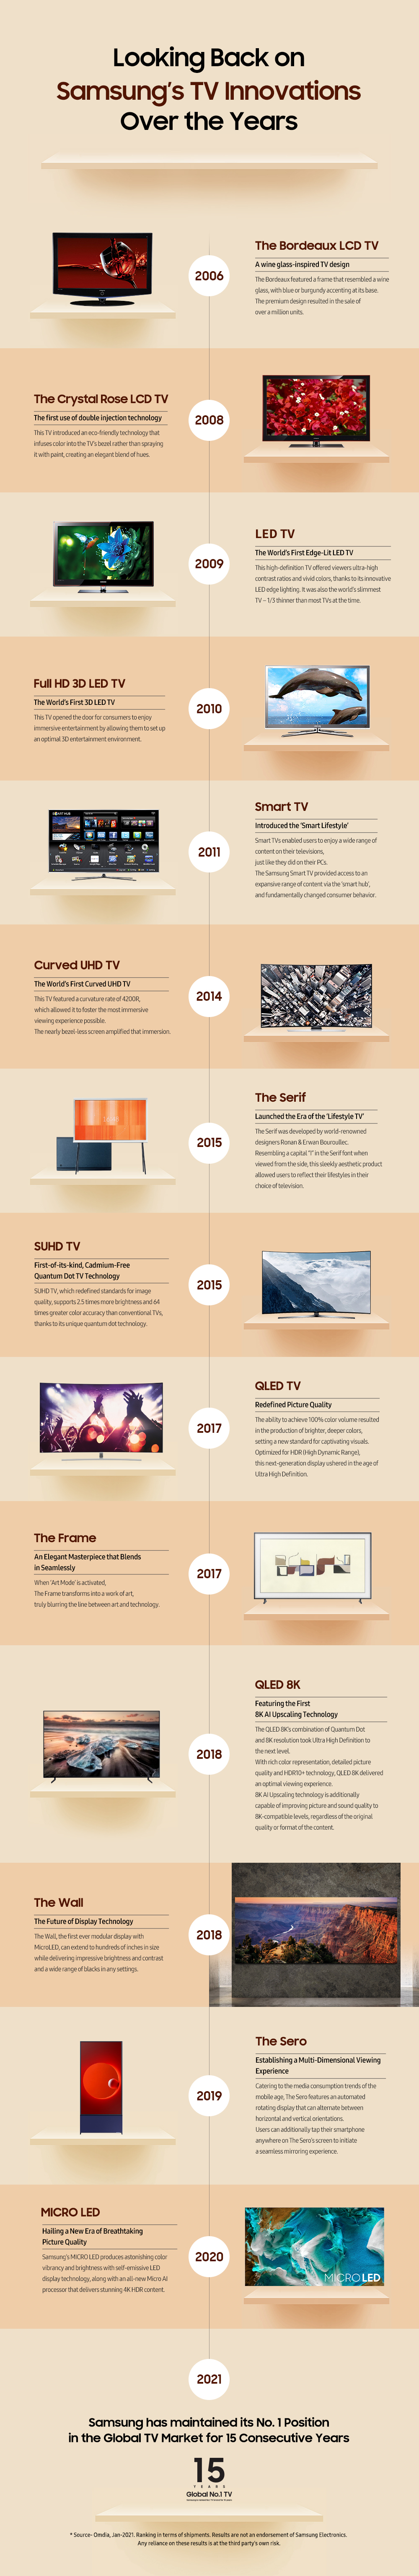 [Infographic] A Timeline of Samsung TV Leadership Over the Years - Image 1